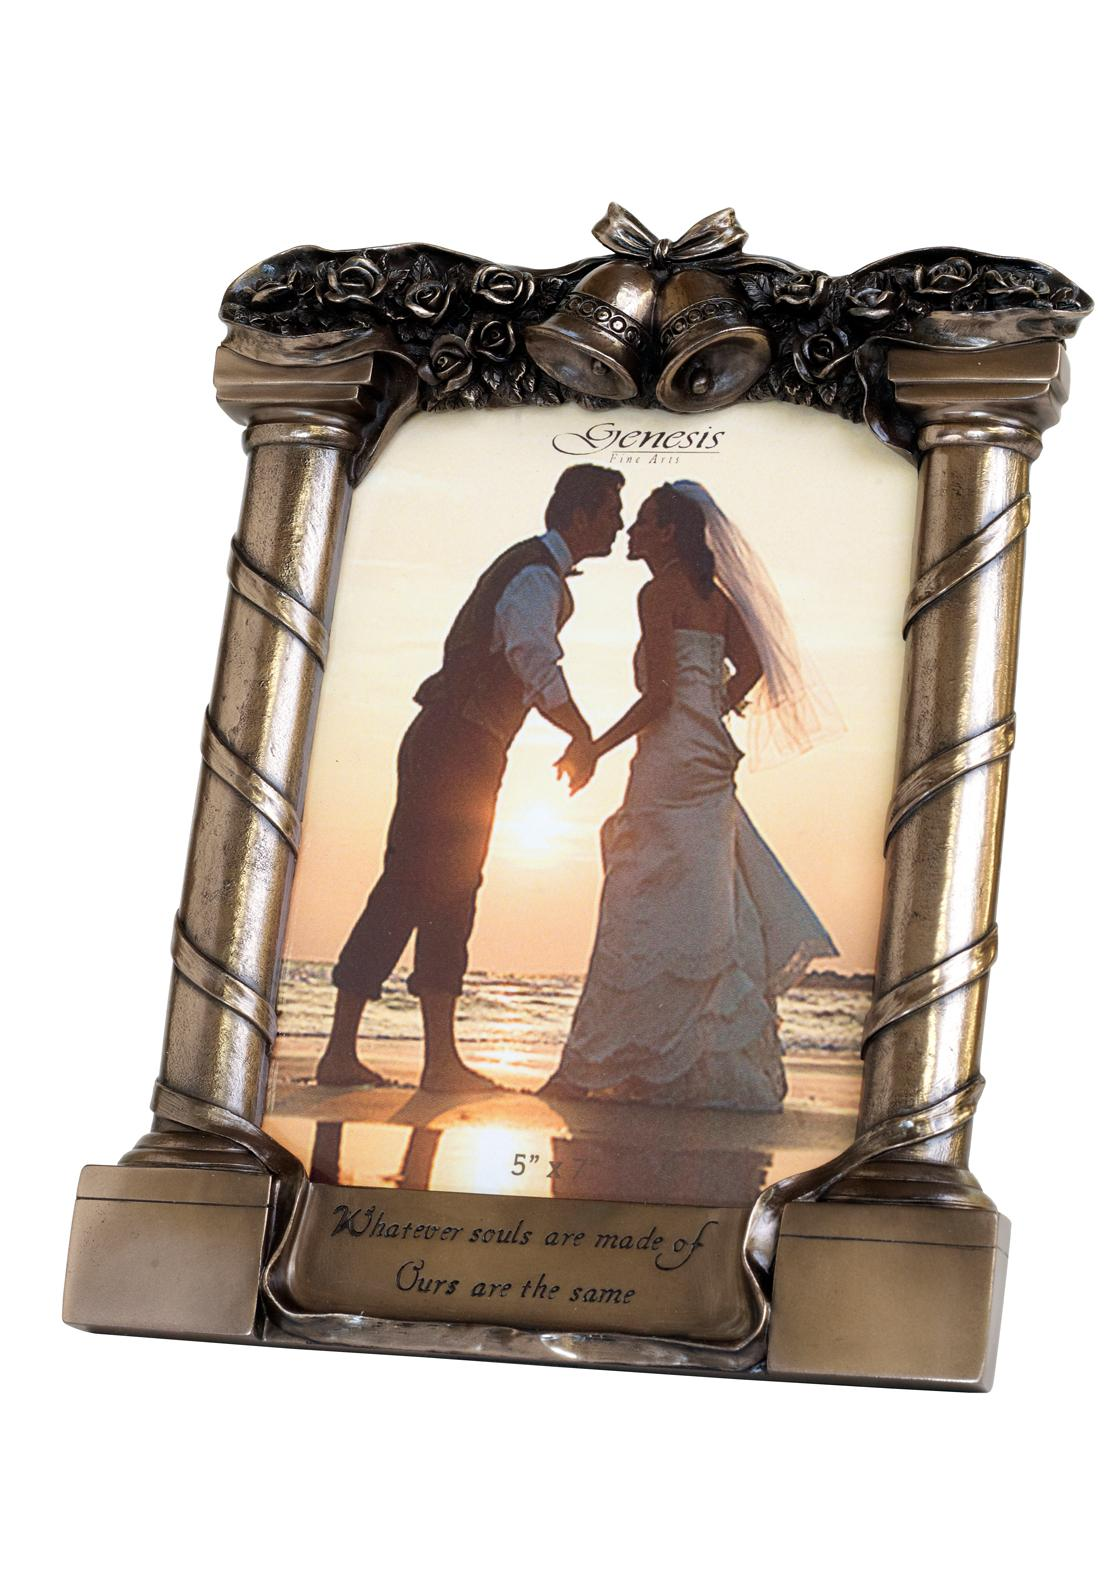 Genesis Wedding Bronze Photo Frame, 5 x 7 inches